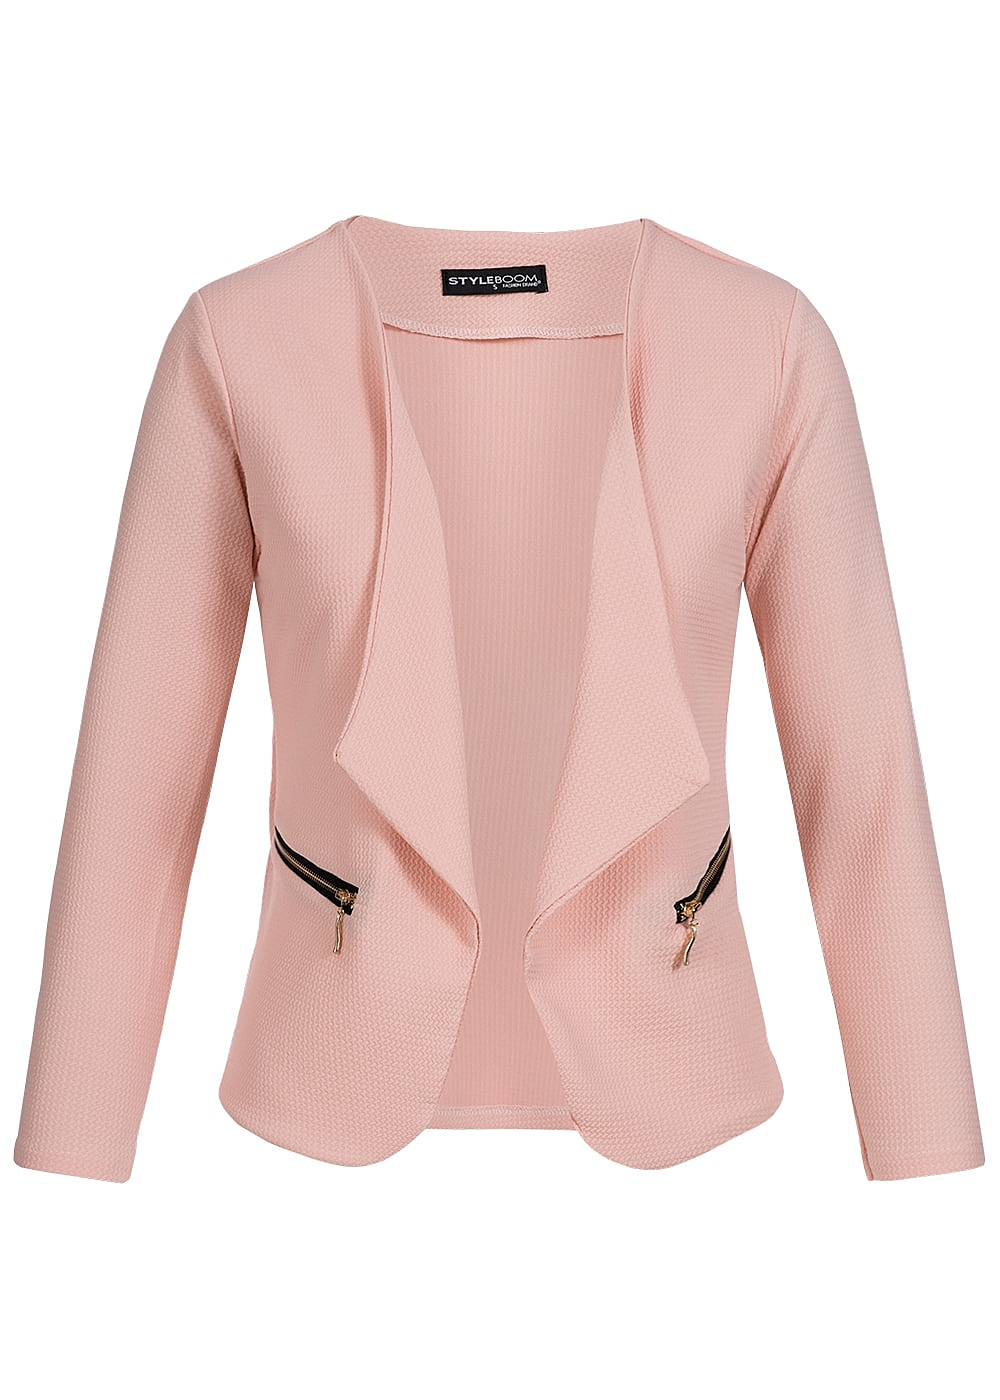 styleboom fashion damen blazer 2 zipper cropped look offener schnitt rosa 77onlineshop. Black Bedroom Furniture Sets. Home Design Ideas